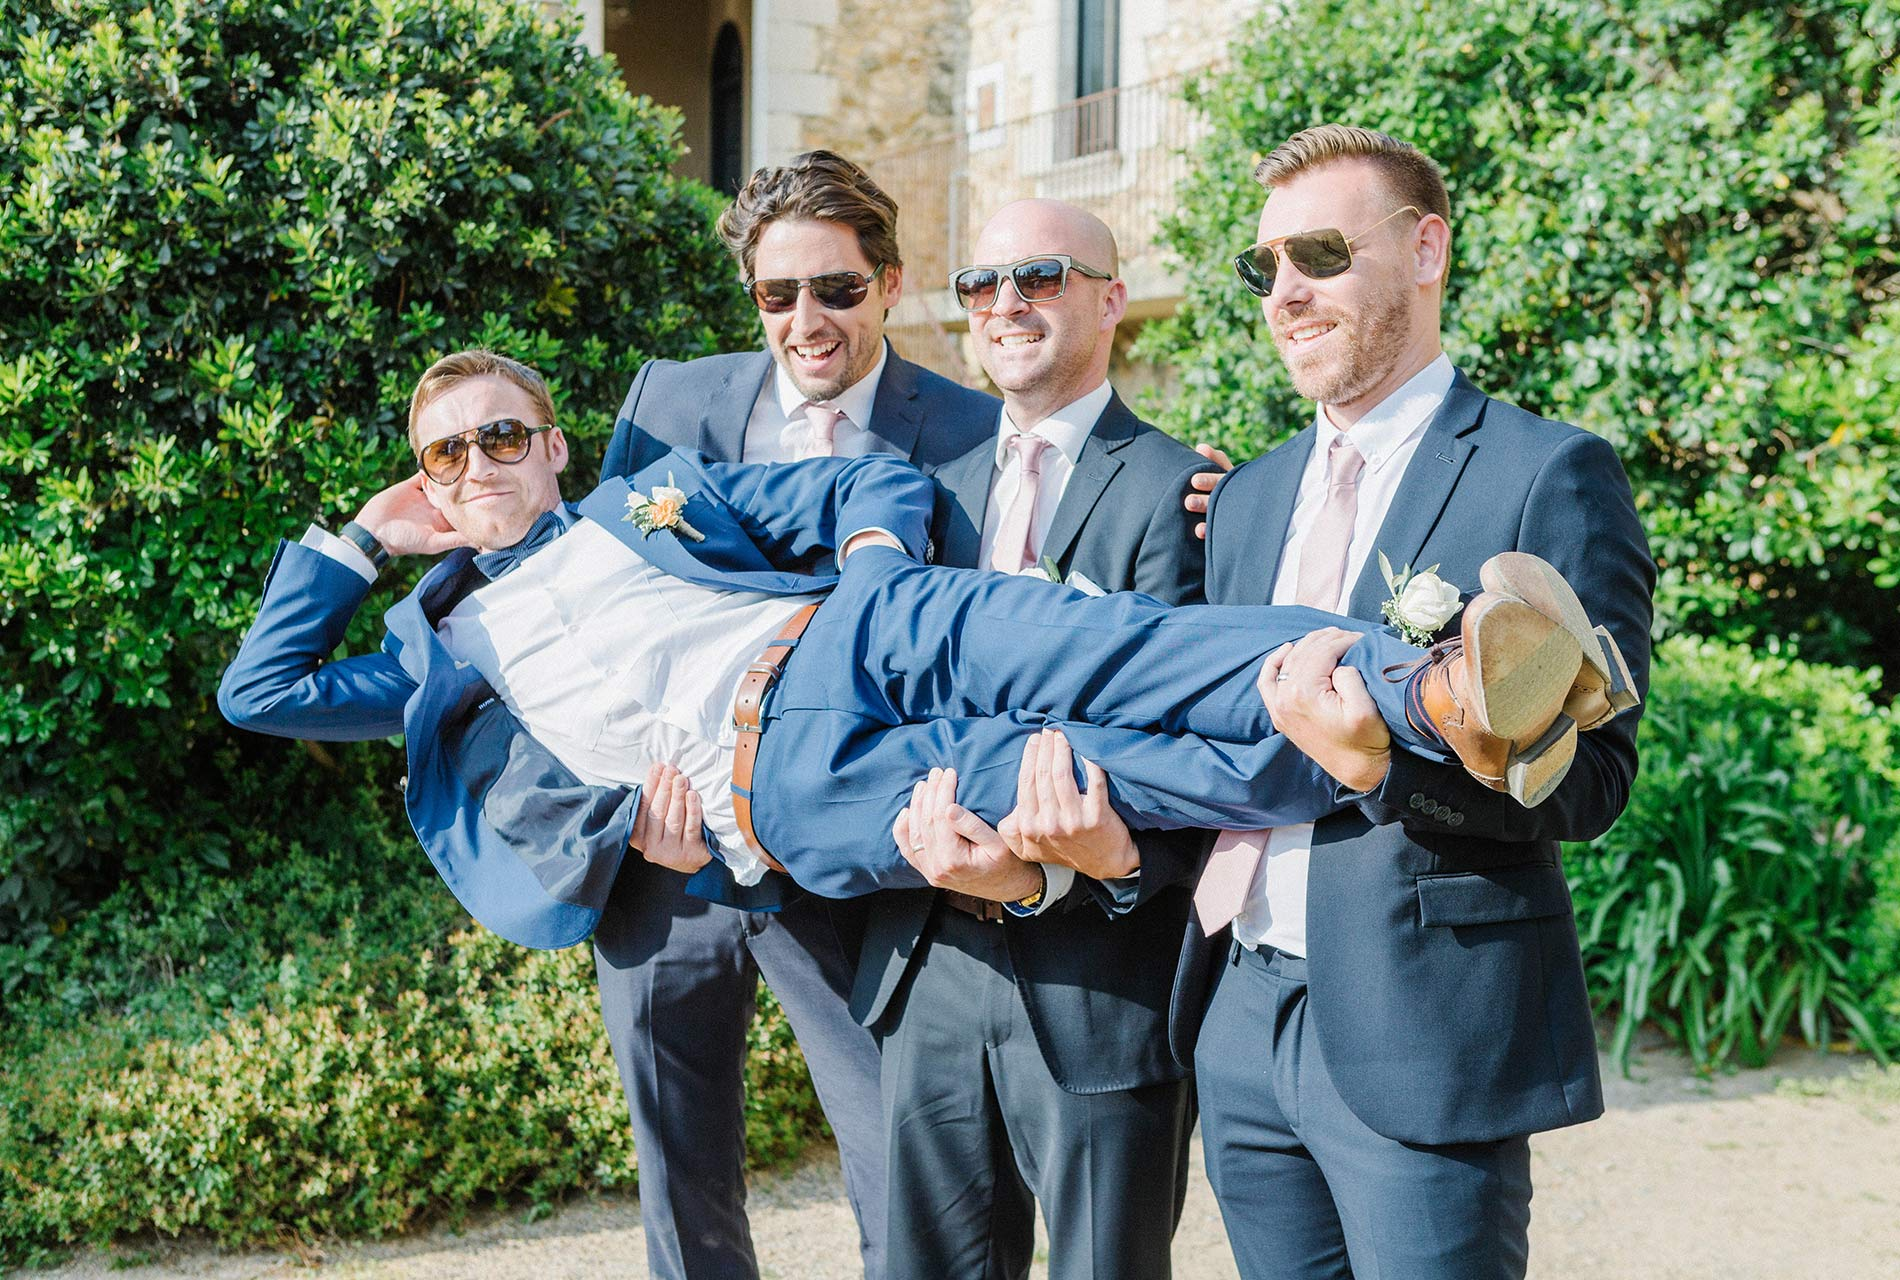 Castell-de-EMporda-wedding-photography---Groom-and-best-men